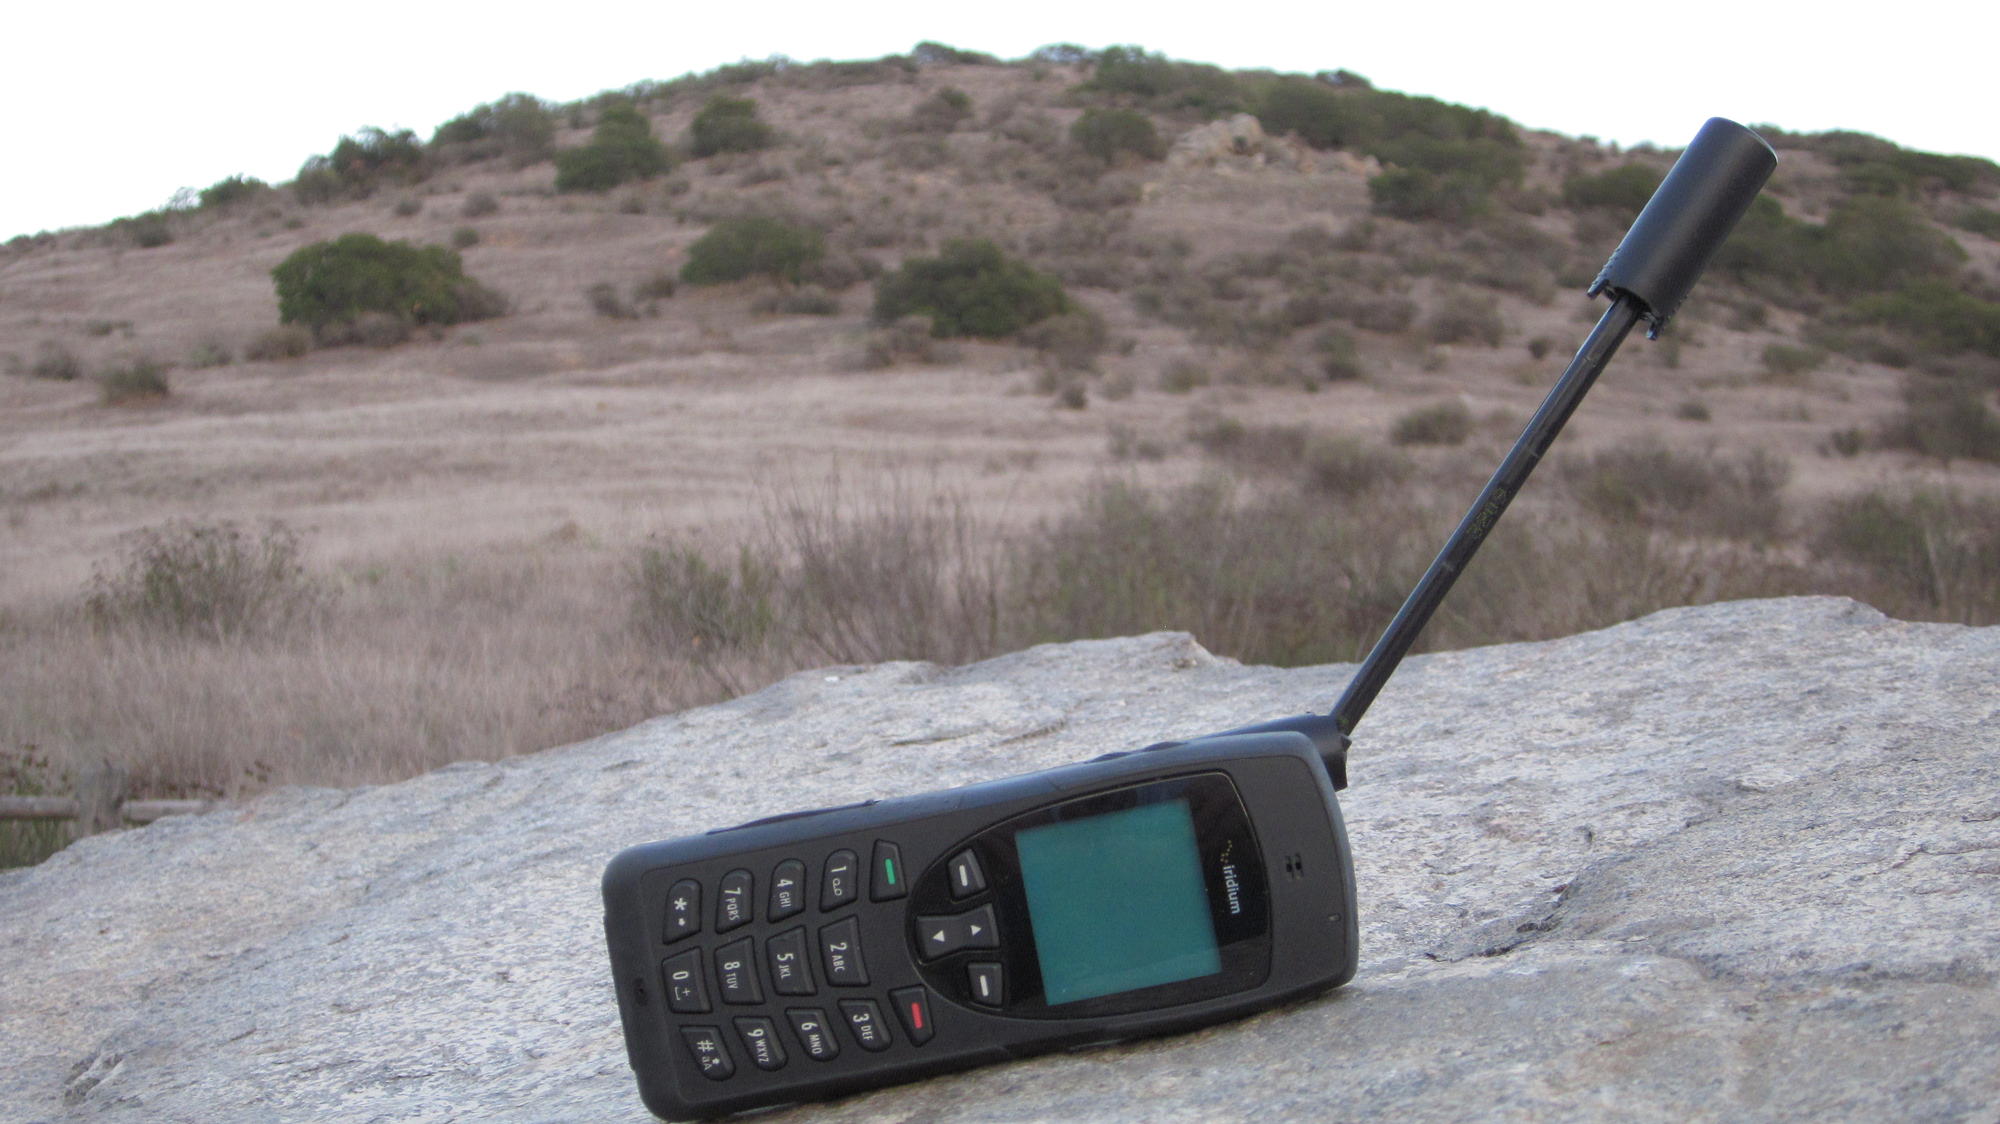 iridium-9555-sat-phone-in-a-mountain.png